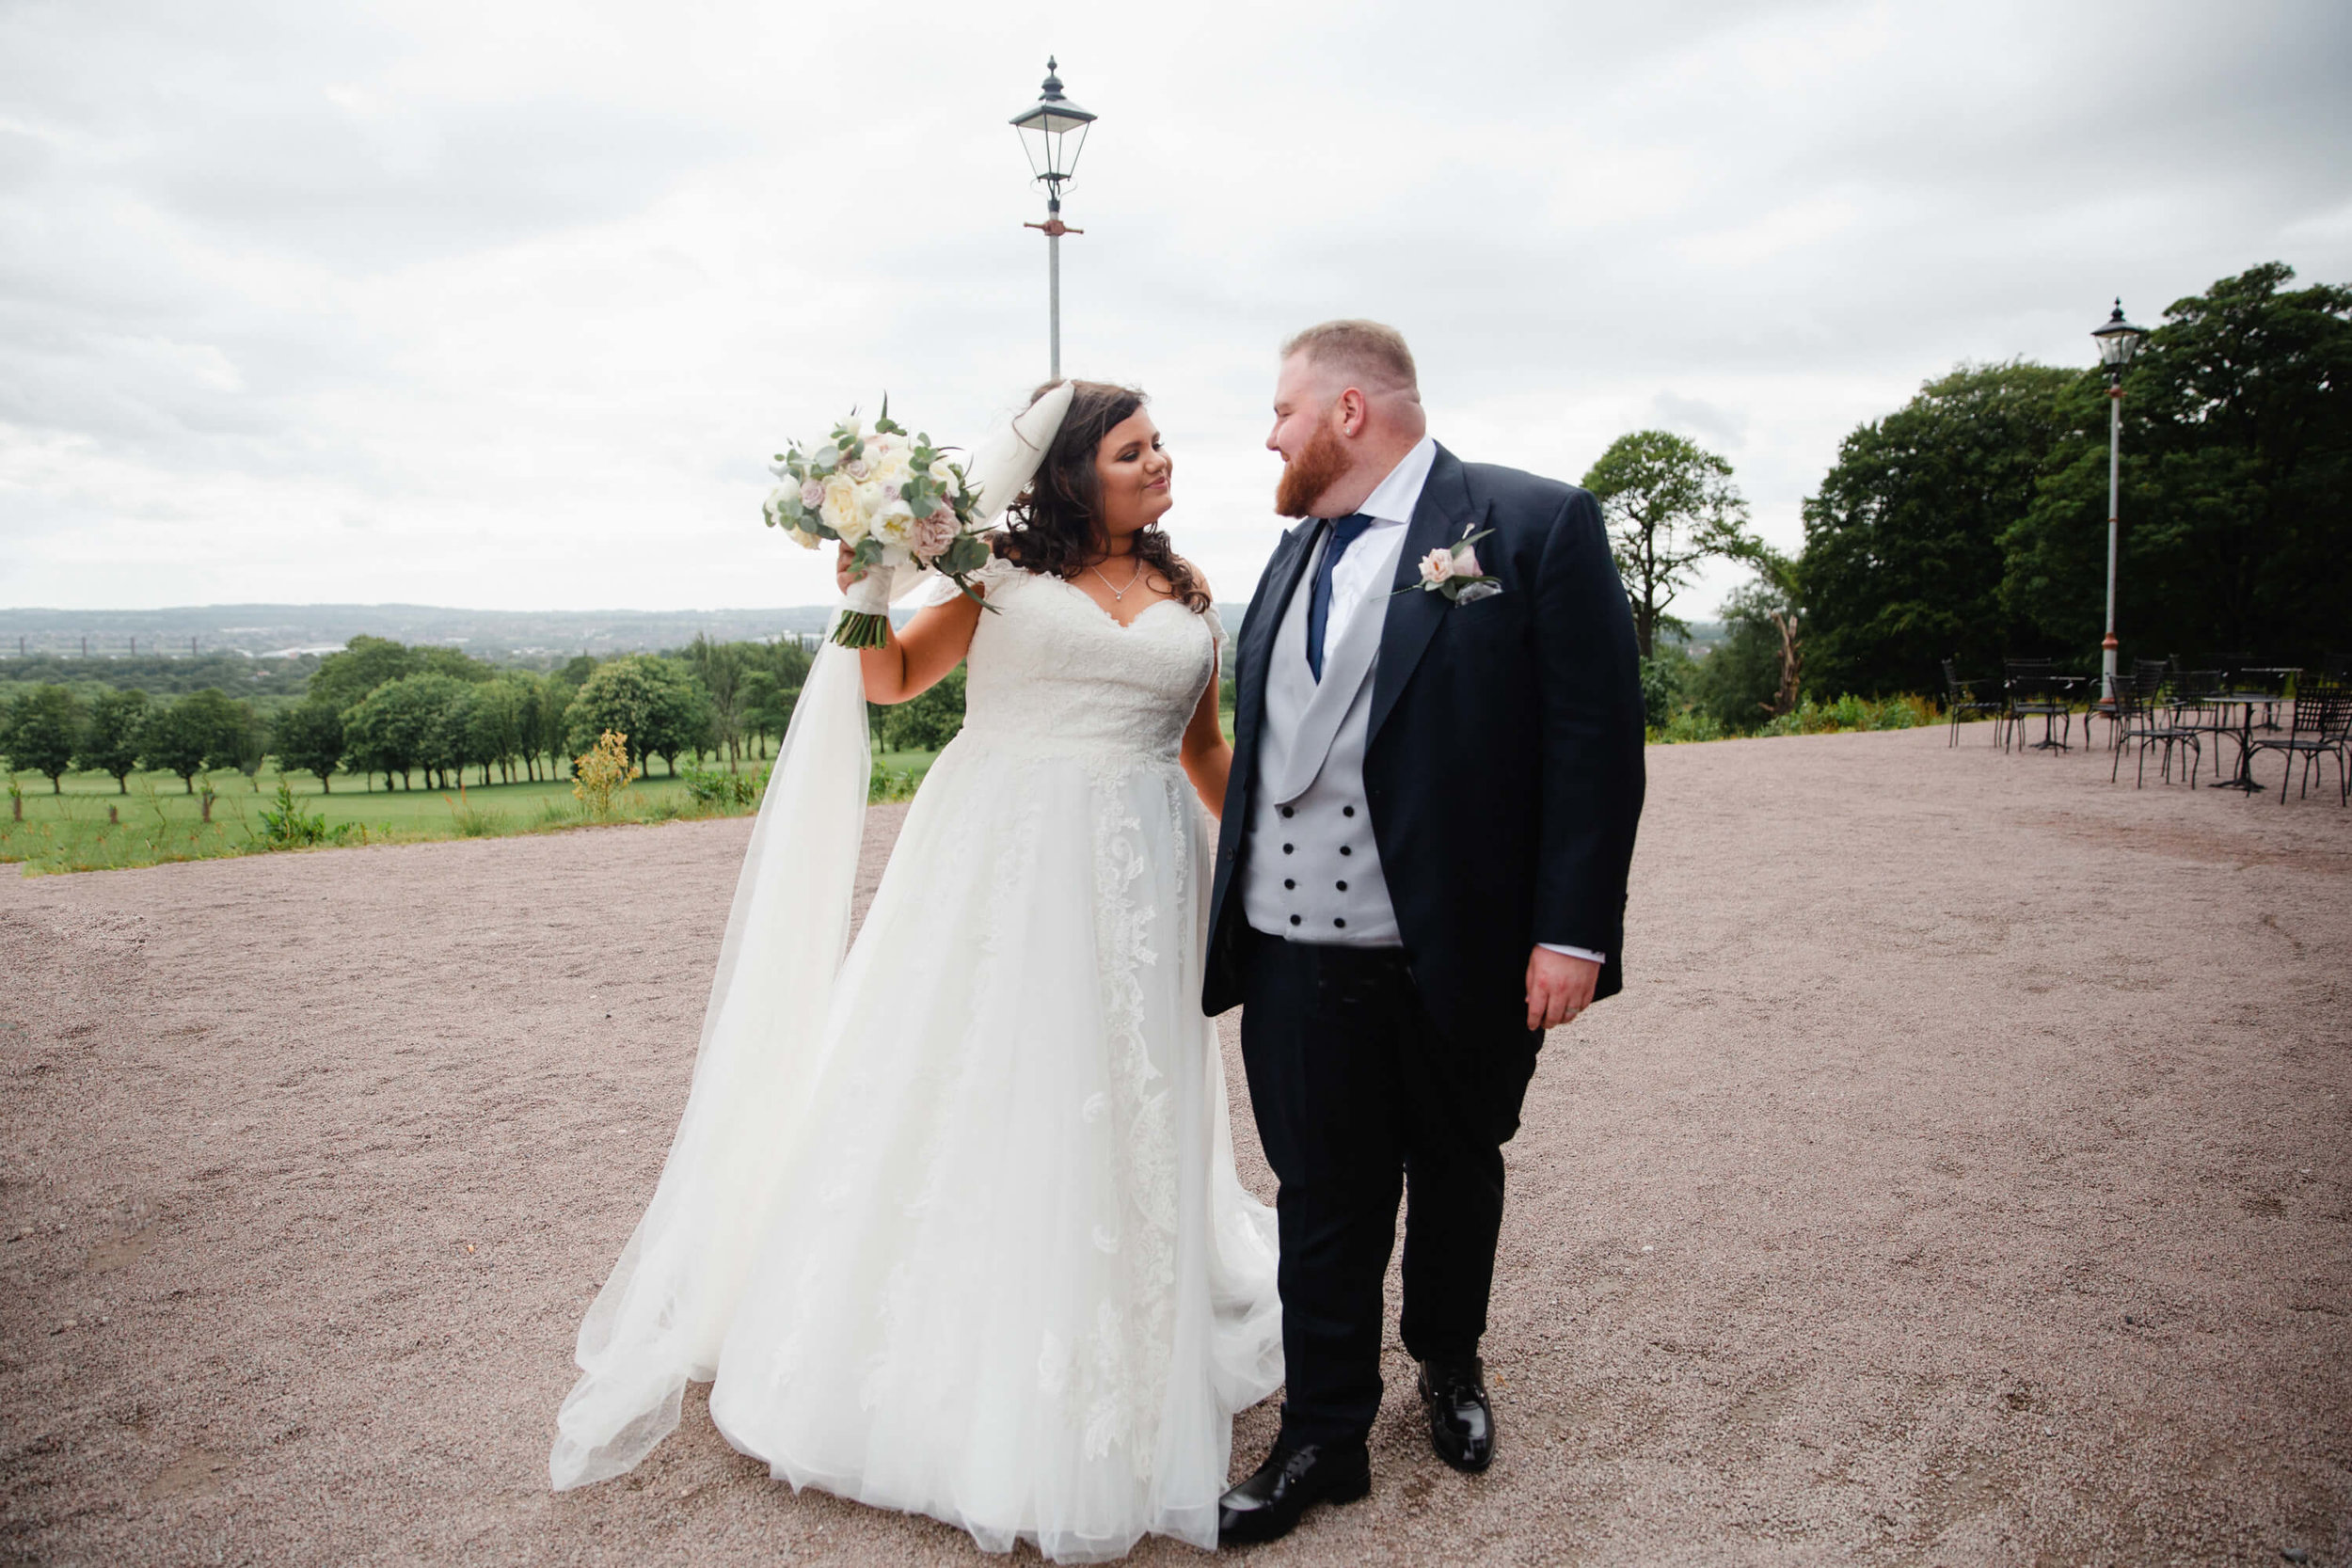 newlyweds holding bouquet of flowers in grounds of haigh hall